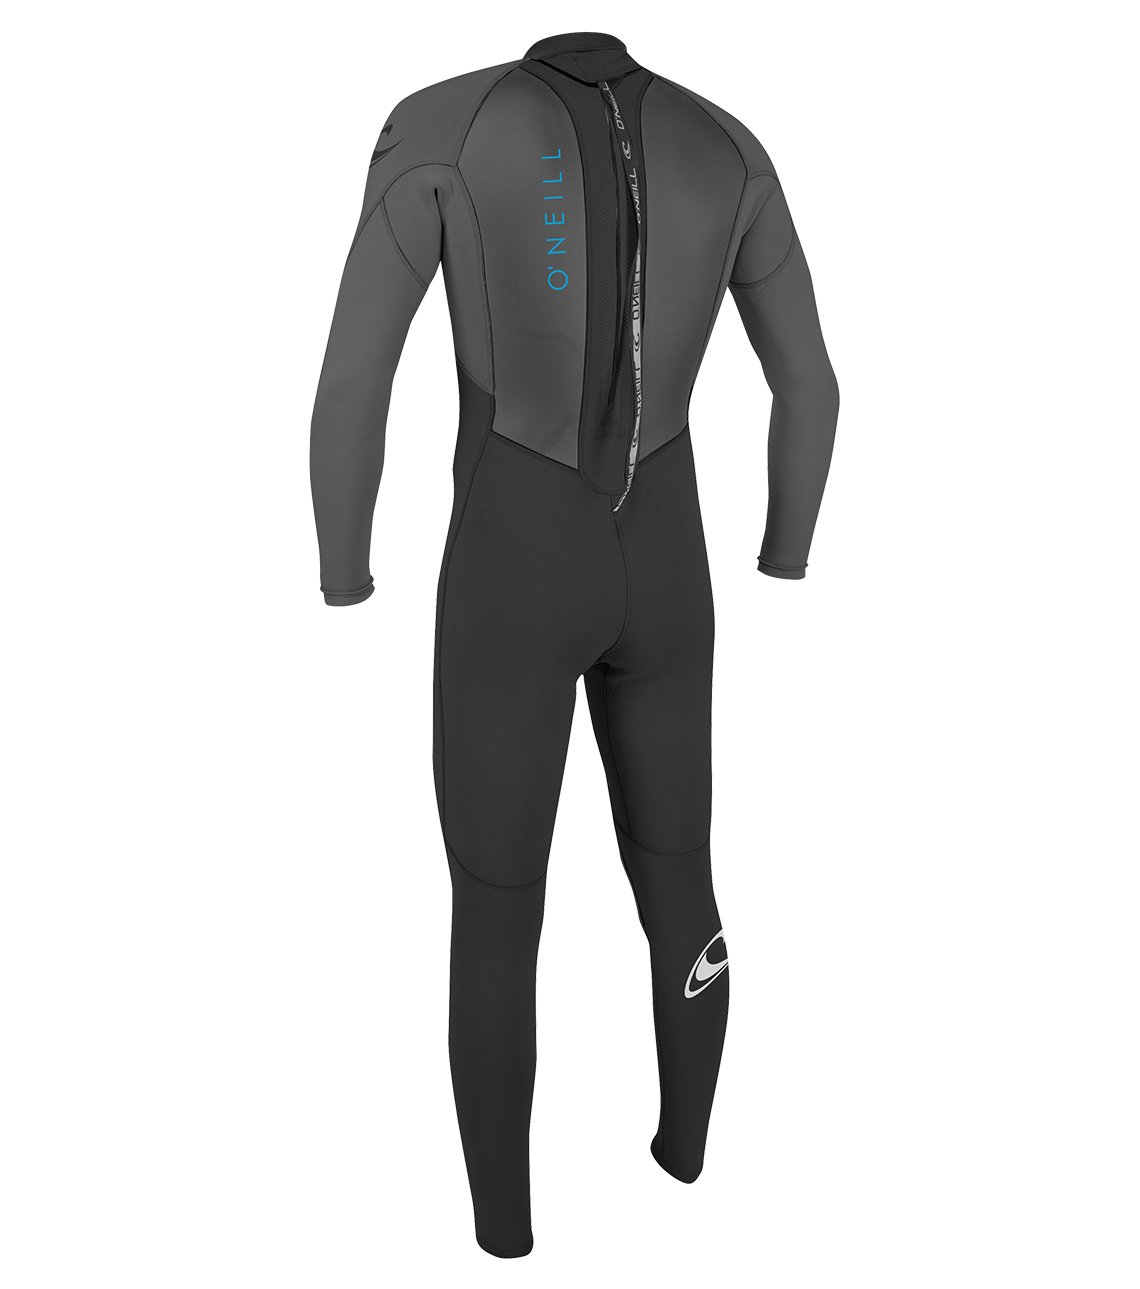 O'Neill Youth Reactor-2 3/2mm Back Zip Full Wetsuit, Black/Graphite, 6 by O'Neill Wetsuits (Image #3)